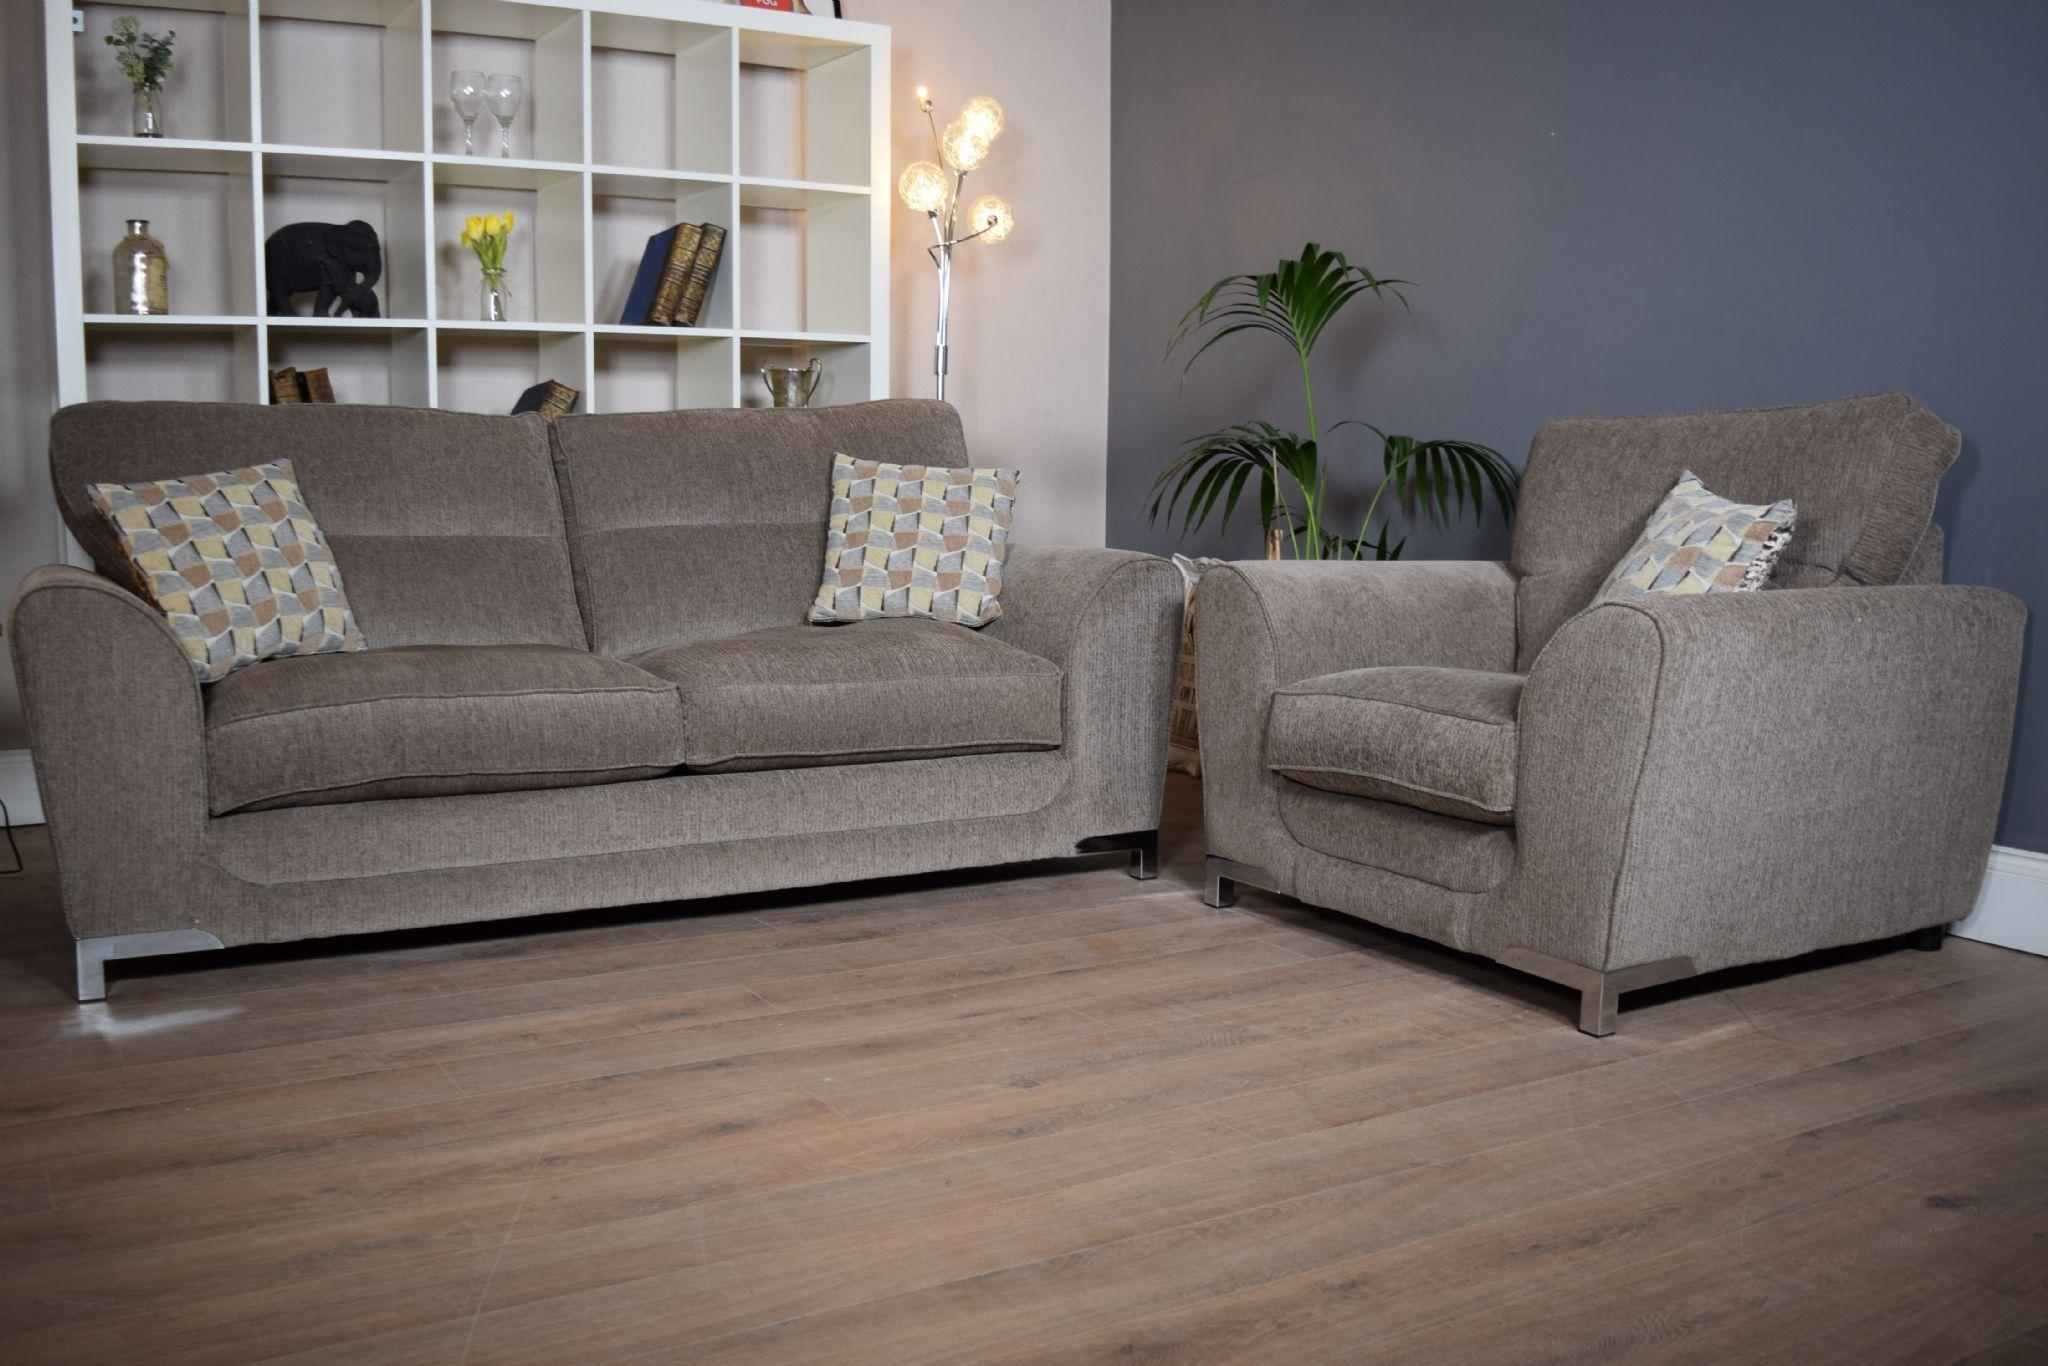 Set Nikki 3 Seater Sofa & Cuddle Chair Suite Set – Mocha Grey Throughout 3 Seater Sofa And Cuddle Chairs (View 14 of 20)